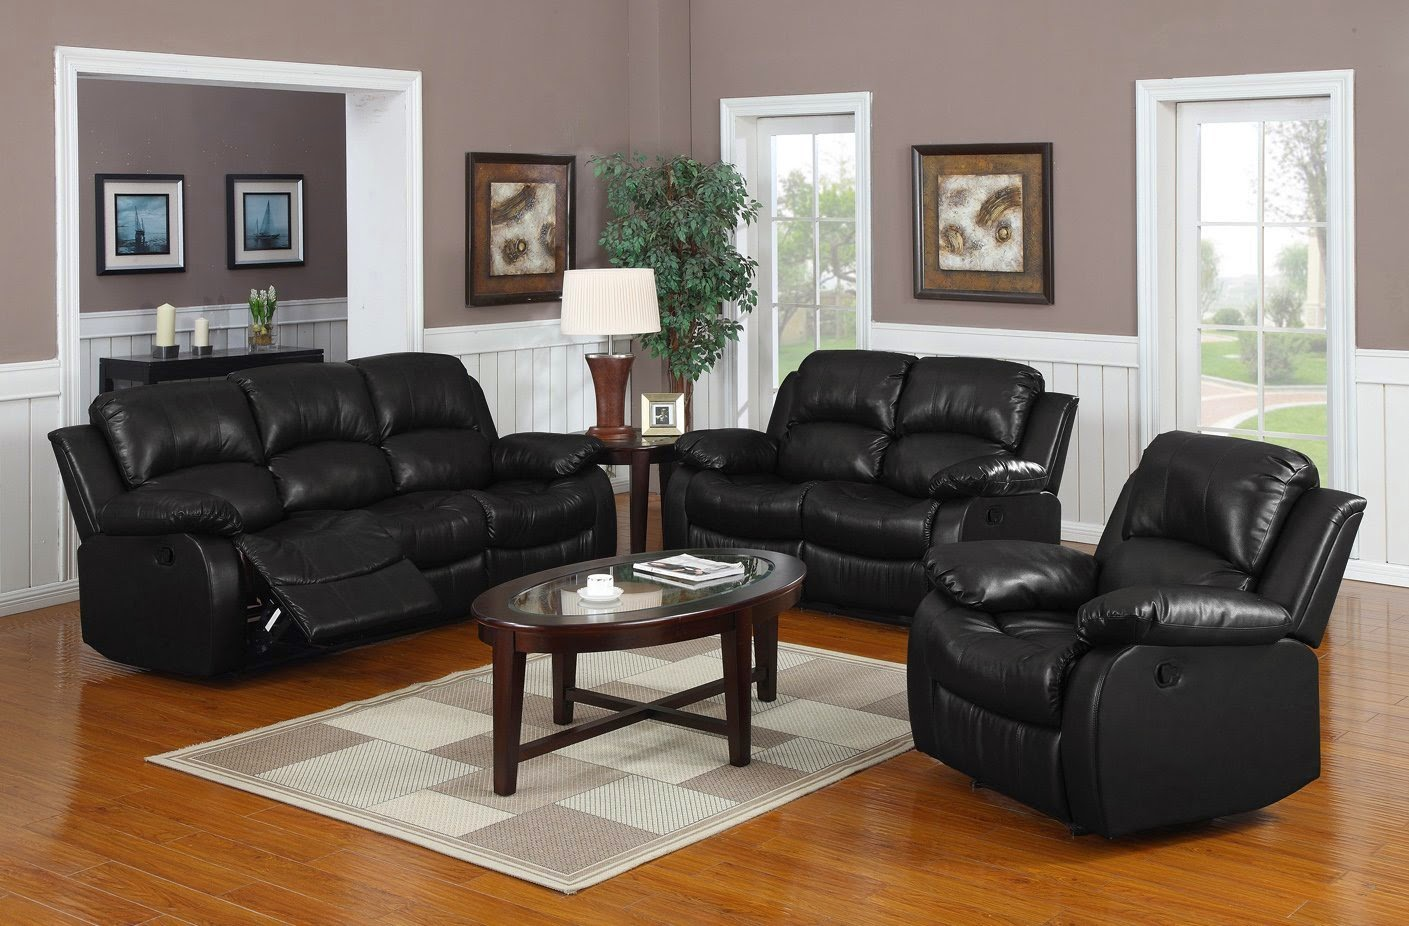 black leather recliner sofas homelegance cheap black leather recliner